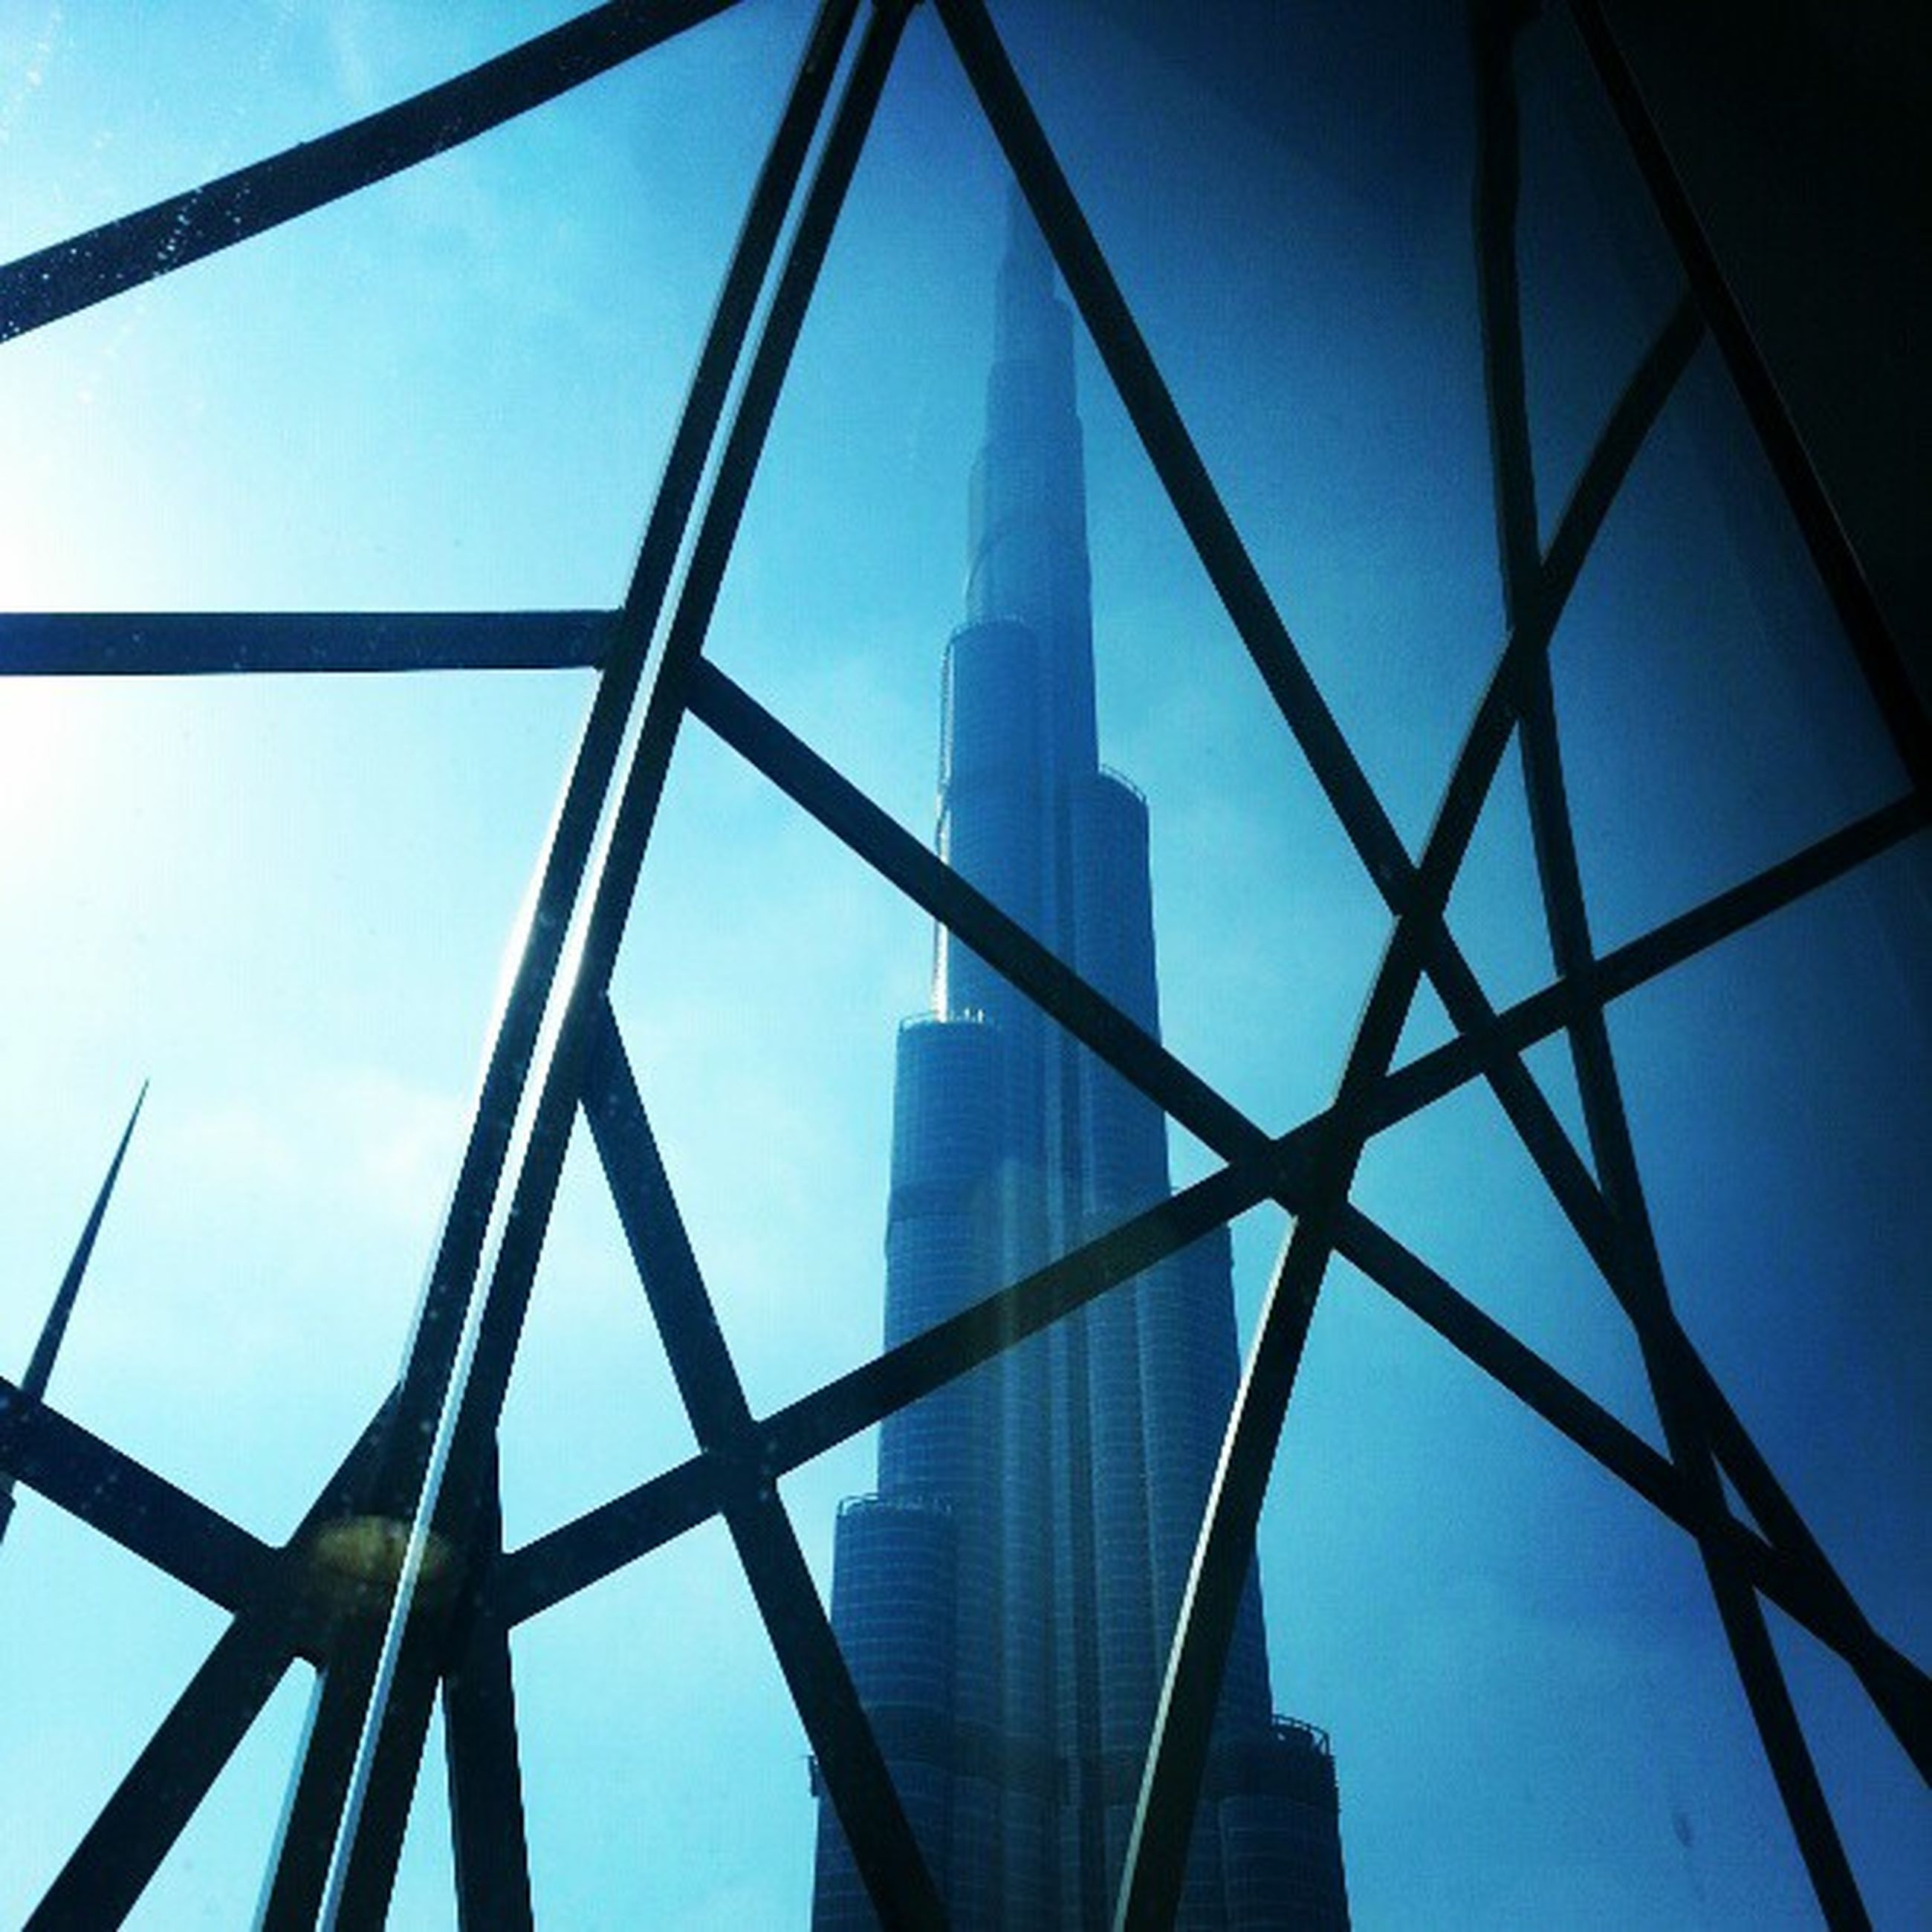 low angle view, built structure, architecture, clear sky, blue, sky, tall - high, building exterior, metal, tower, modern, day, grid, glass - material, metallic, no people, outdoors, skyscraper, city, office building